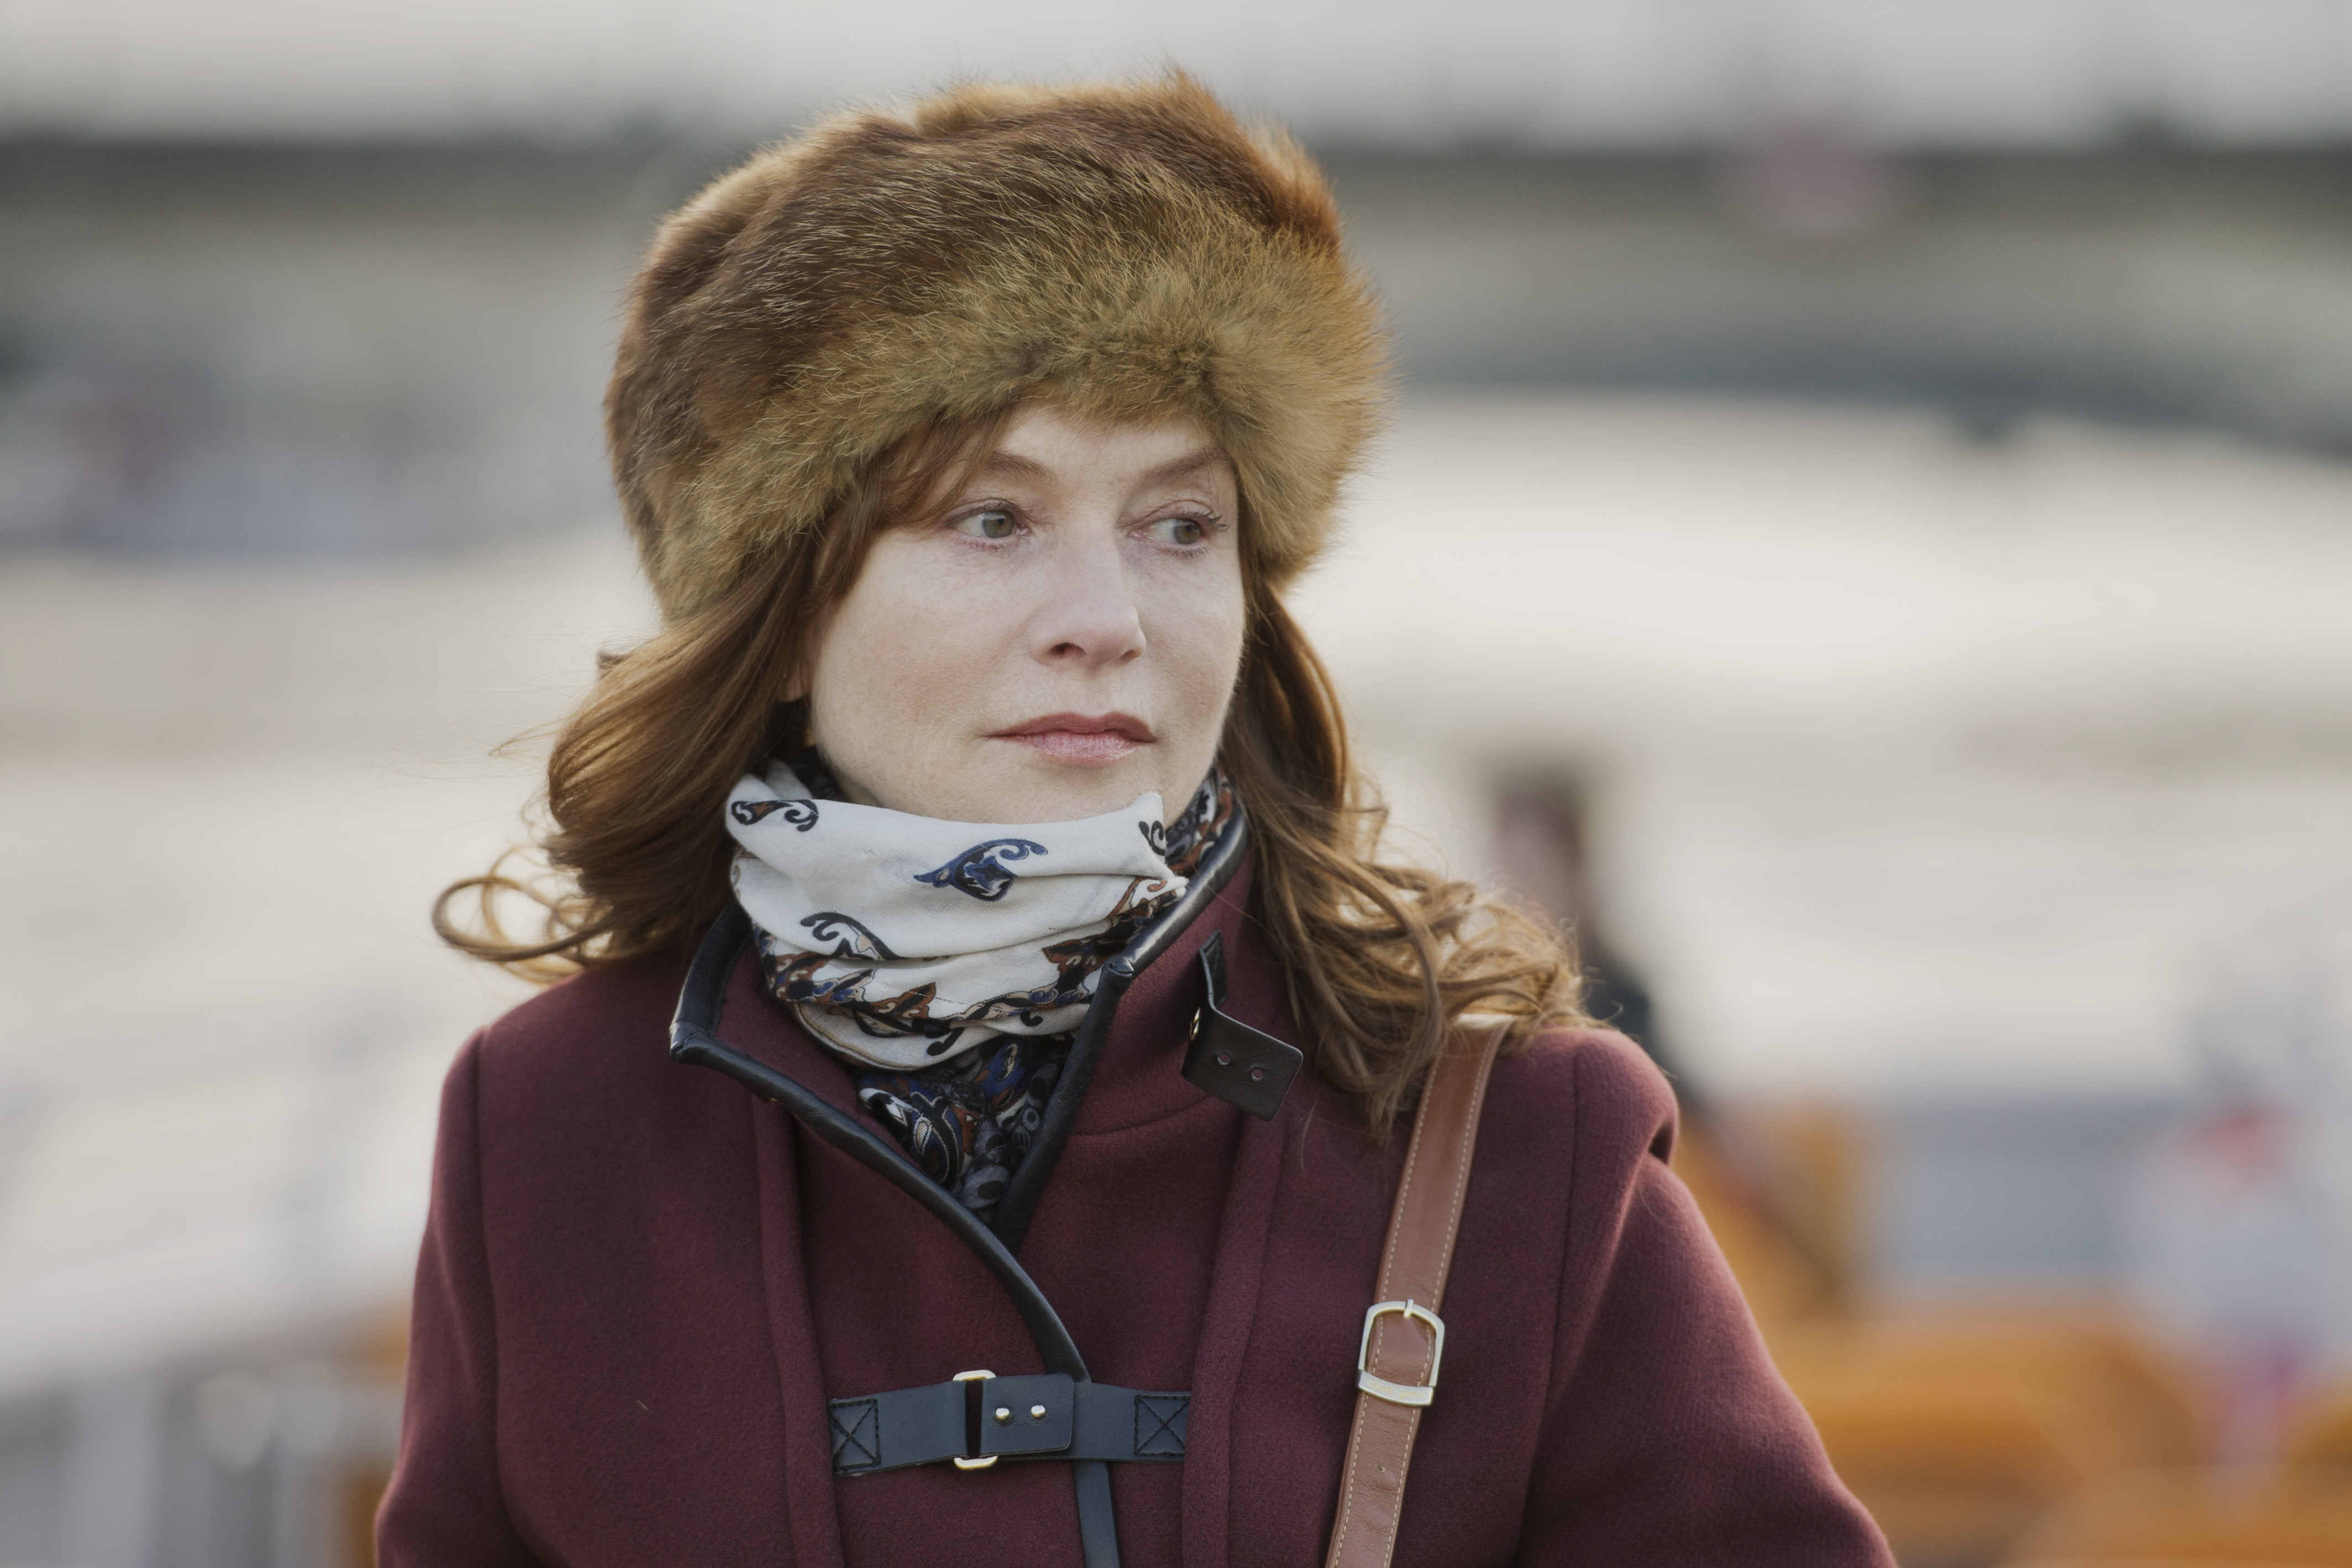 the incomparable Huppert